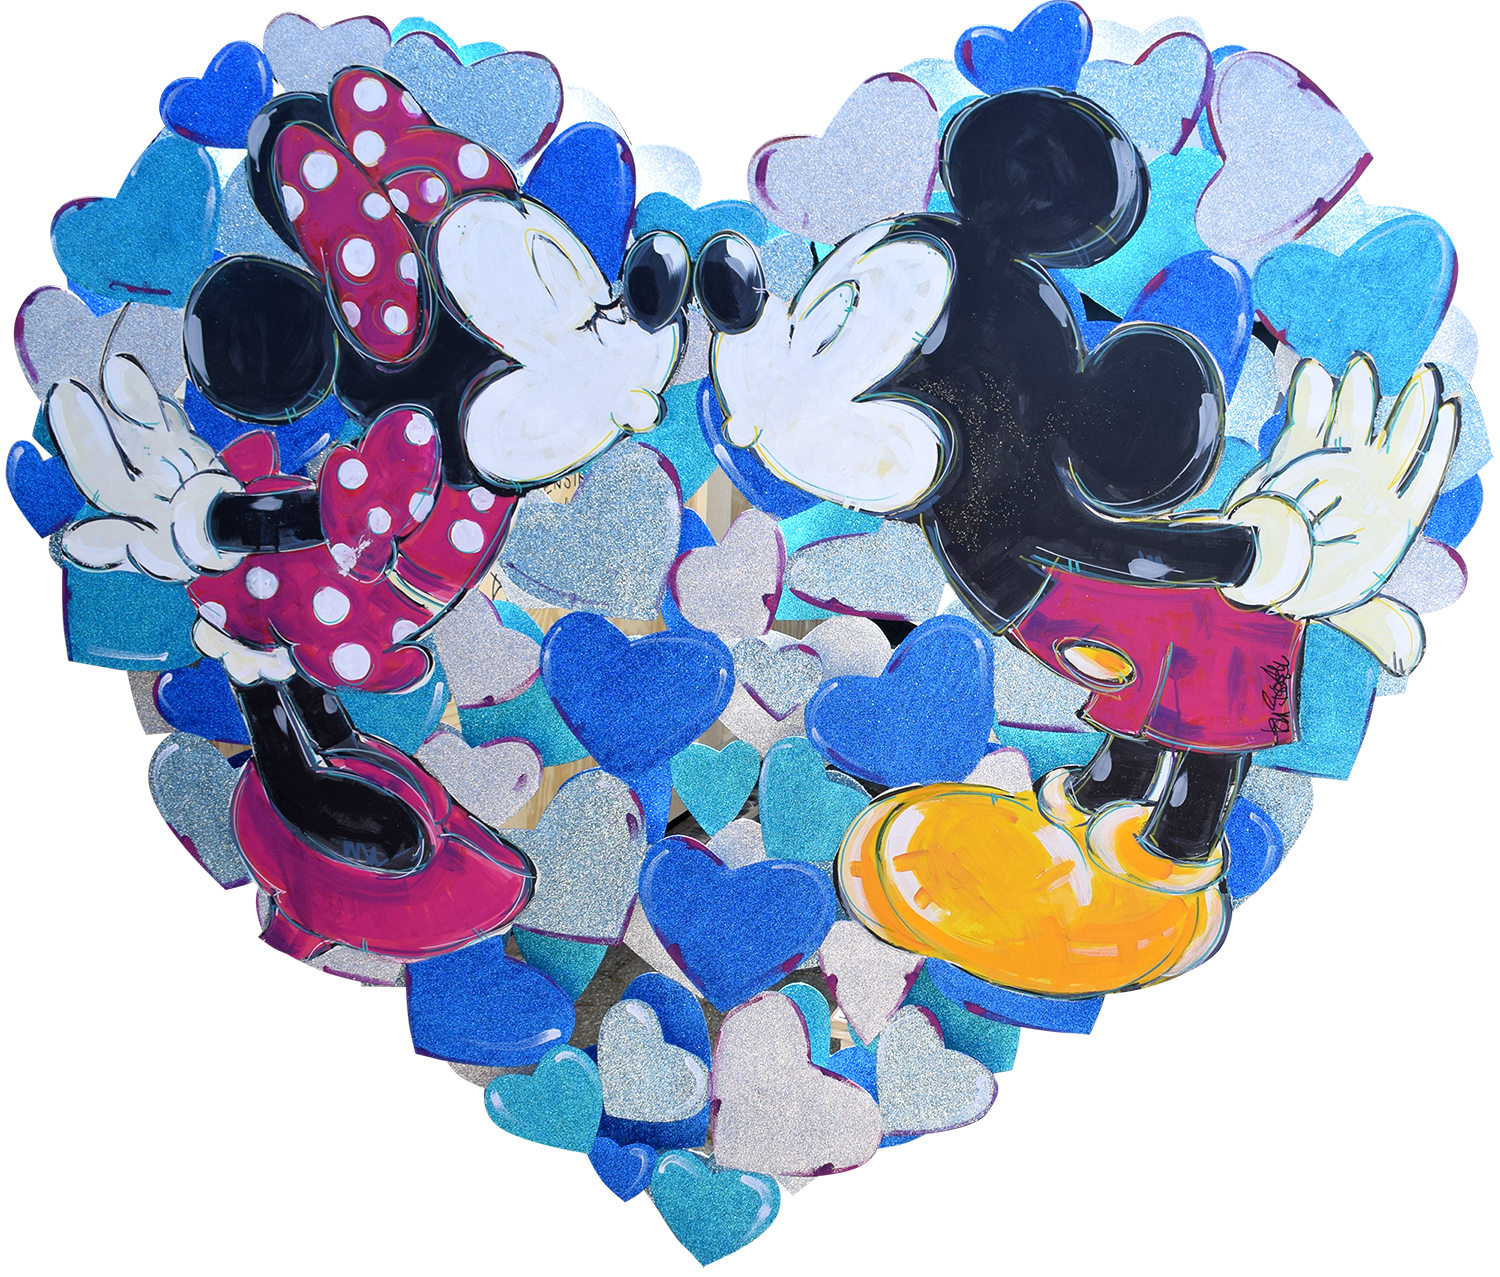 Tom Boston - Mickey und Minnie in Love (Blue-Silver) , 8017-006-715